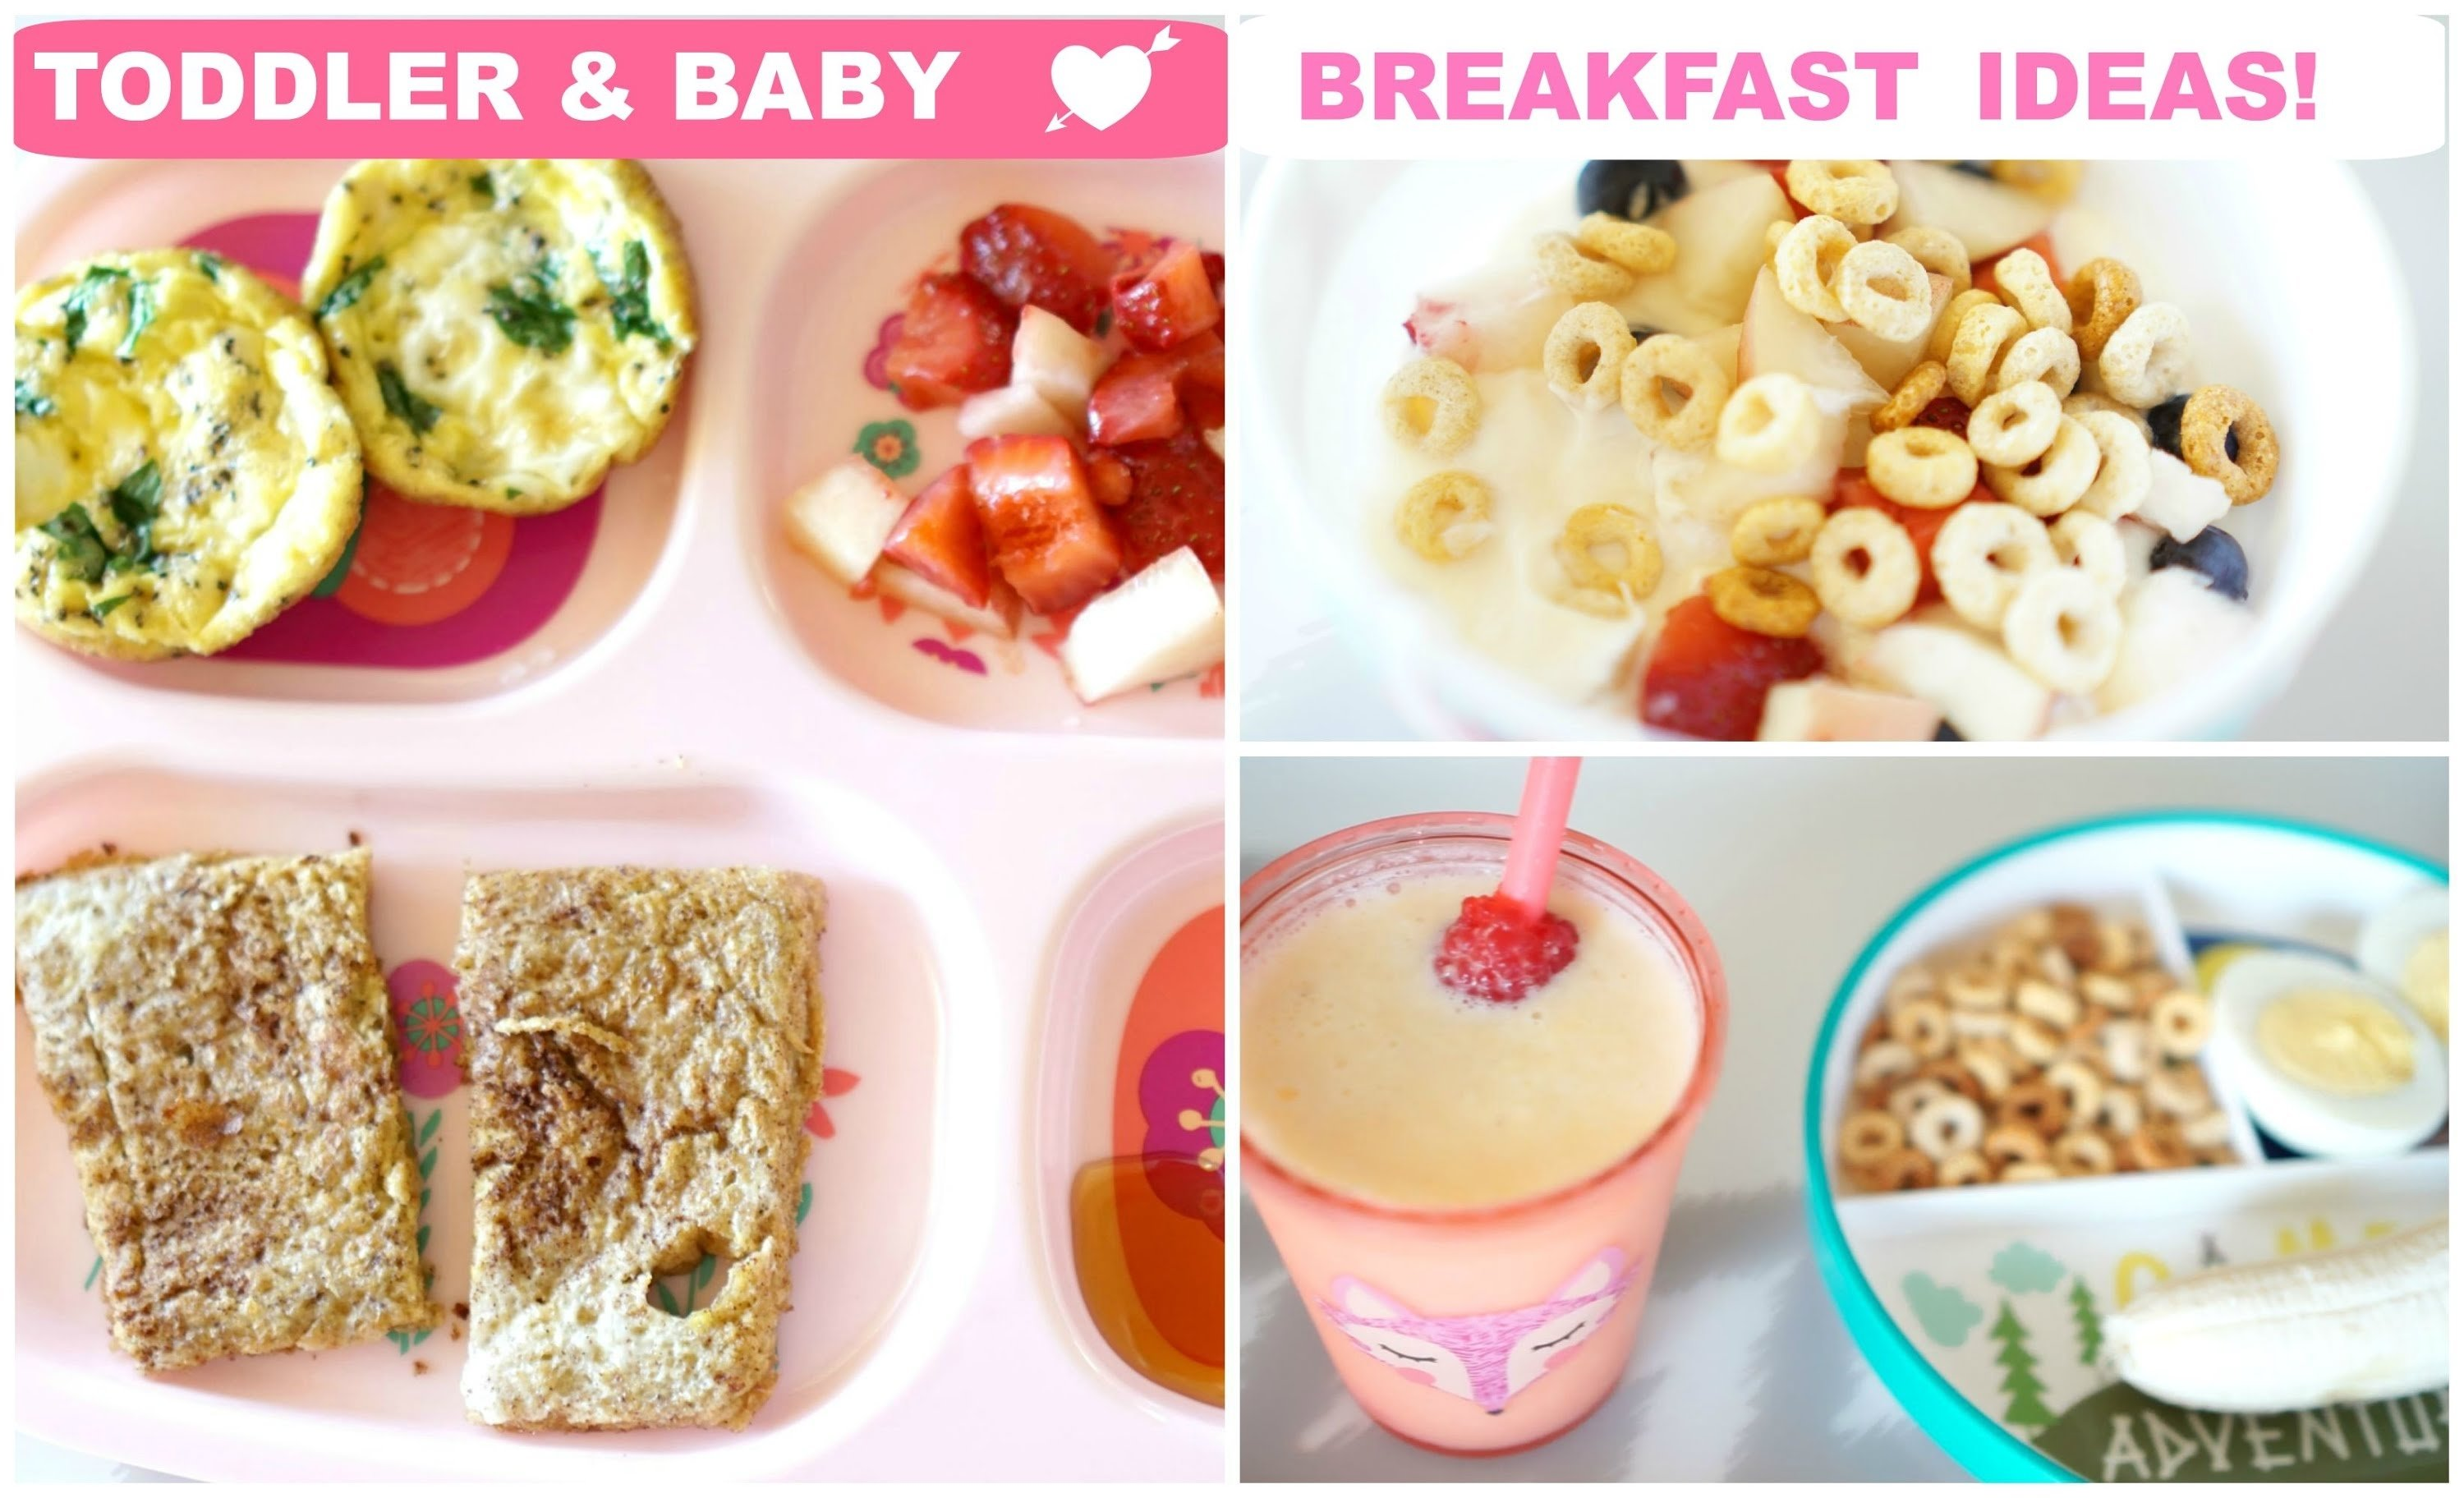 10 Lovely Breakfast Ideas For 1 Year Old breakfast ideas for toddler baby youtube 1